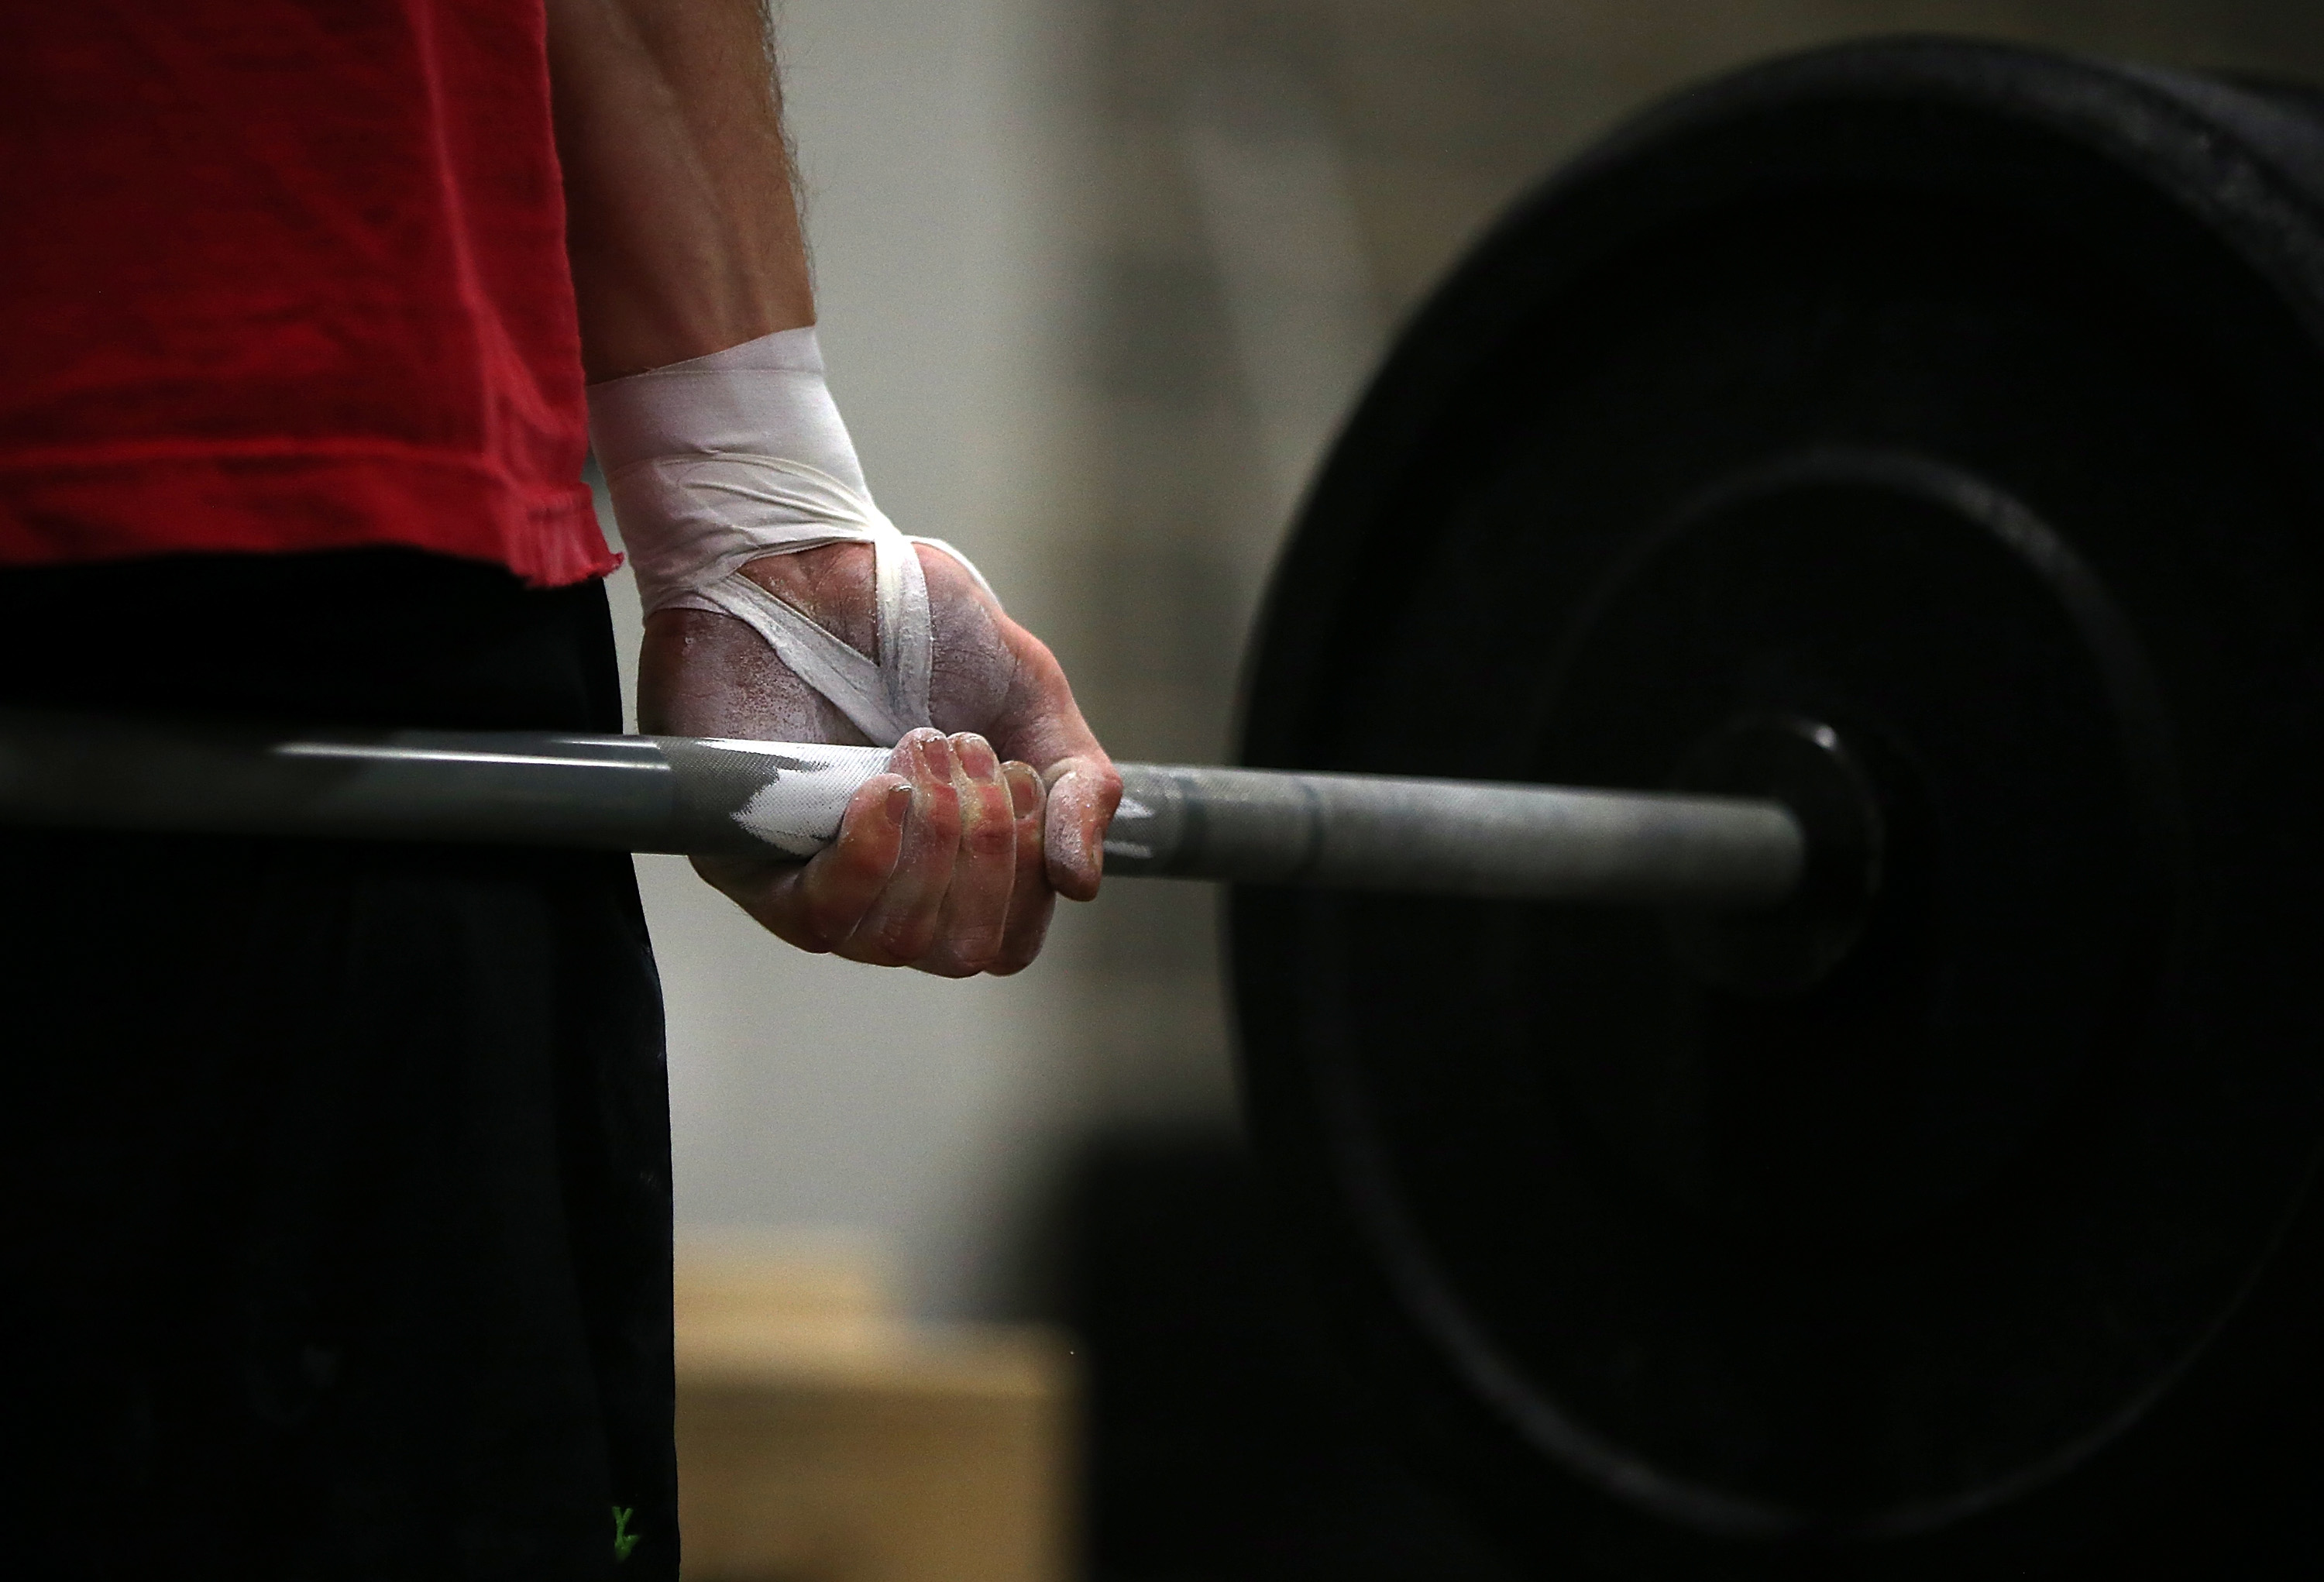 CrossFit Boycotts Facebook, Instagram, Lists Litany of Complaints